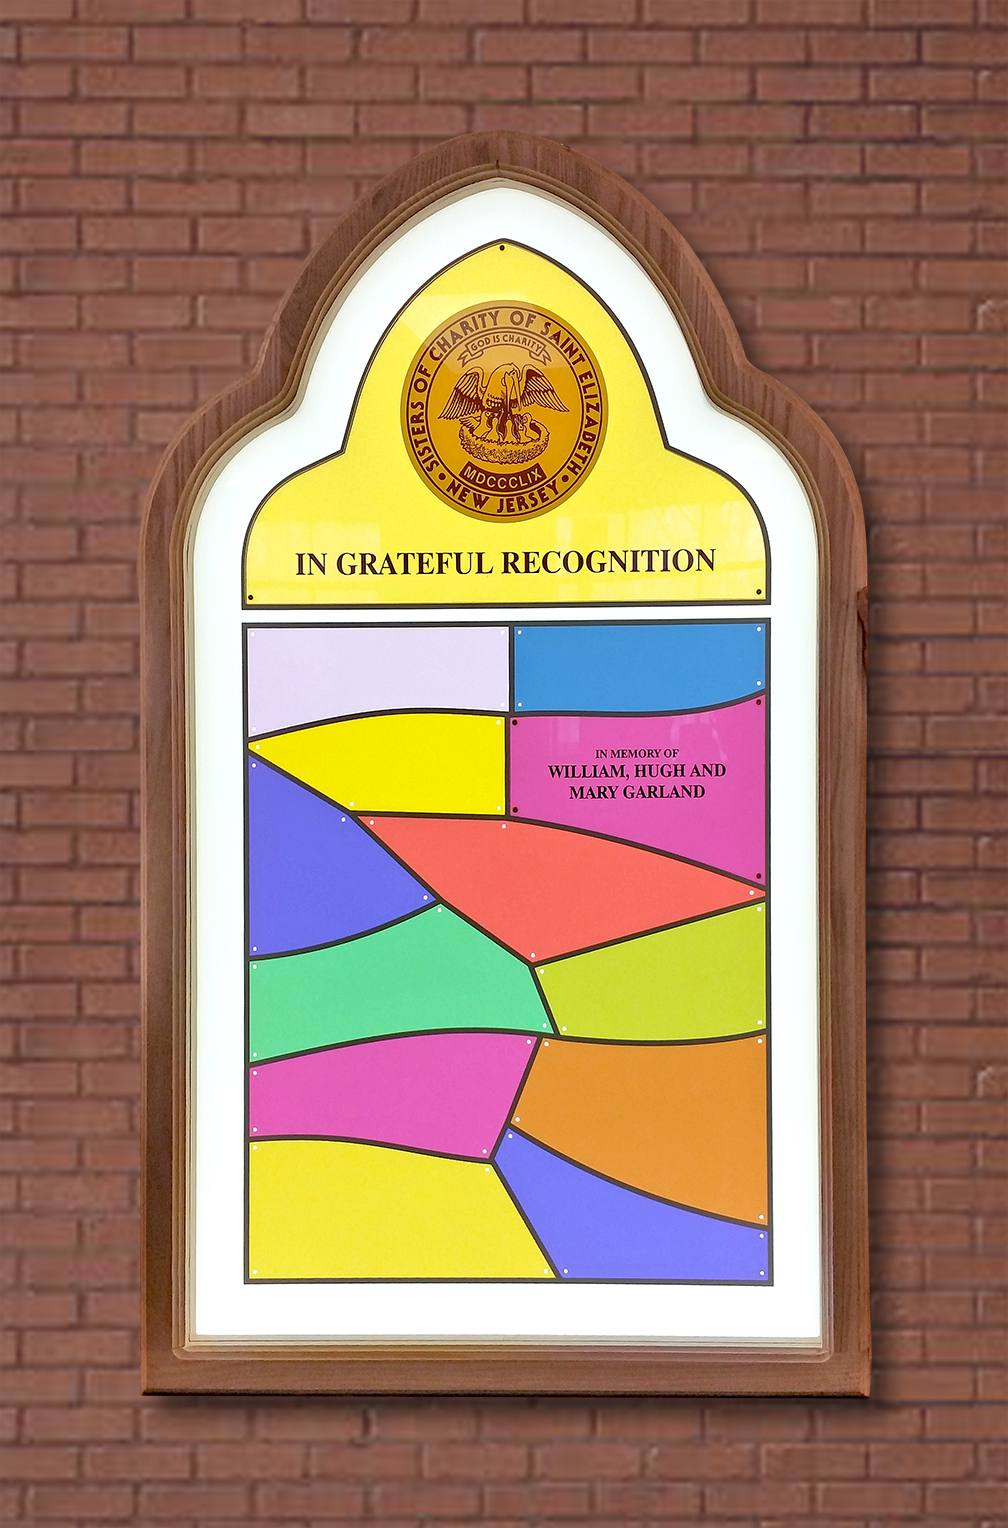 Light Box - Sisters of Charity of St. Elizabeth